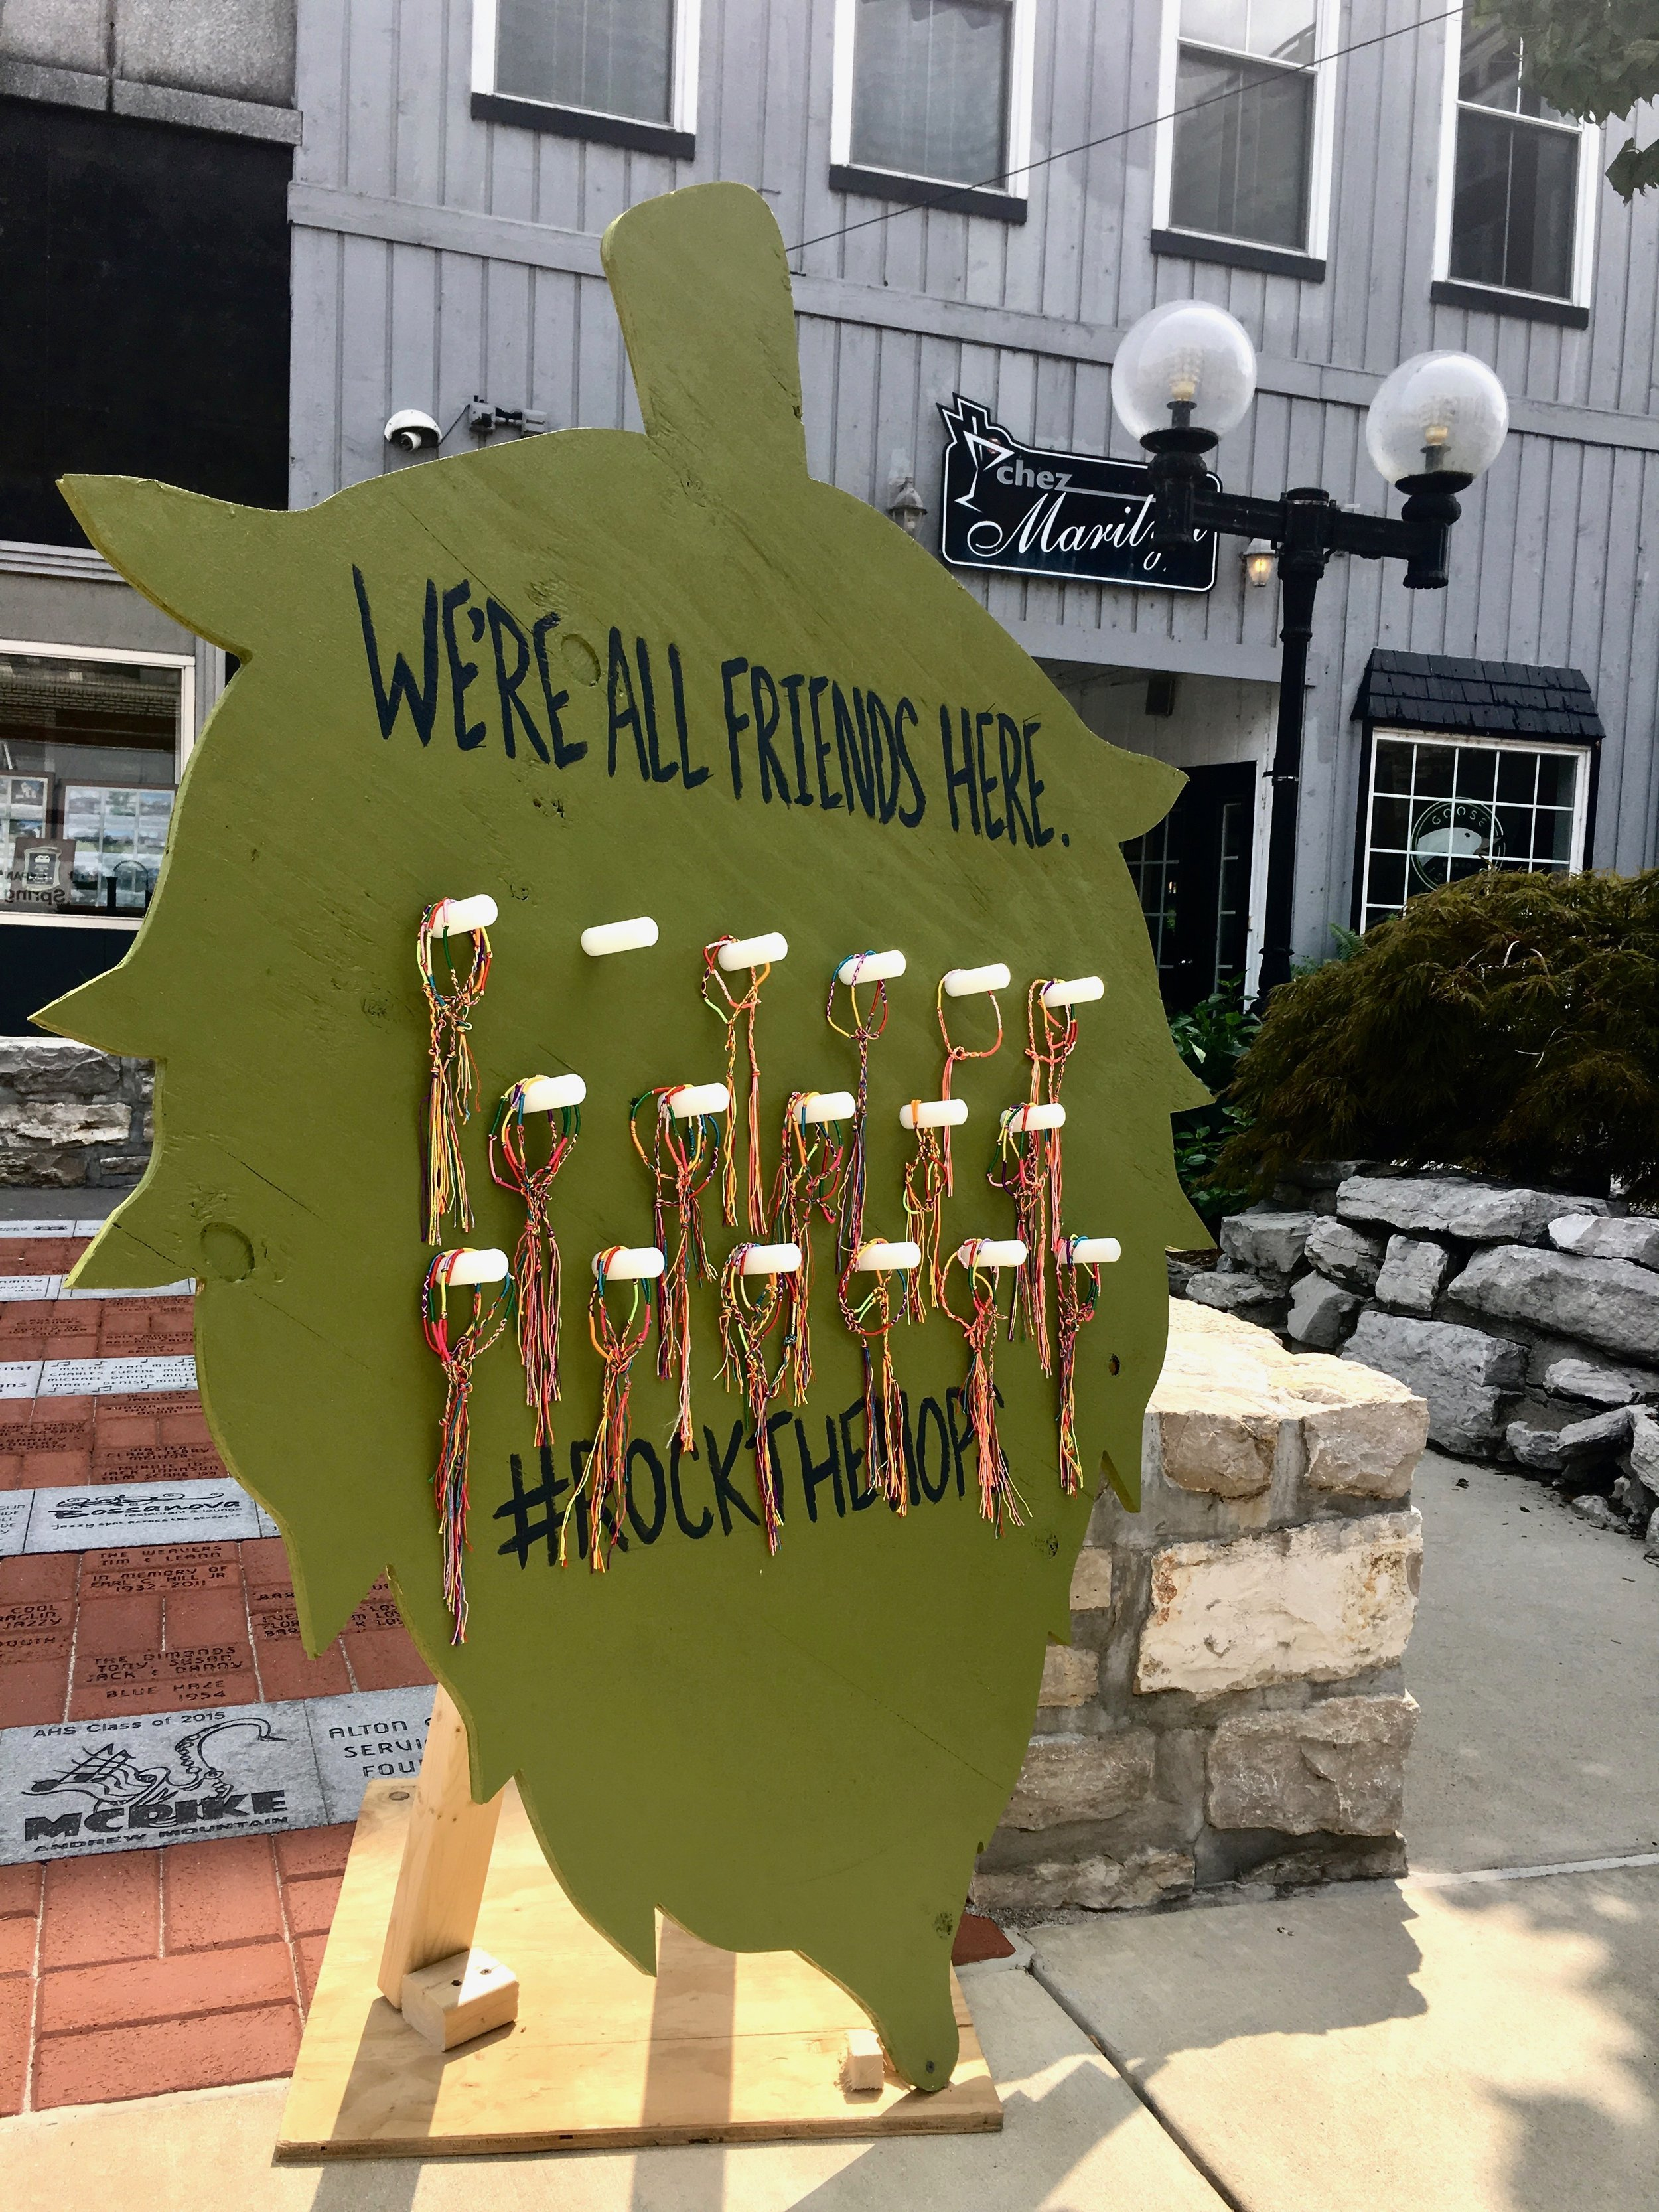 Before entering businesses hosting Rock the Hops, people could pick up and wear a free friendship bracelet, welcoming all. Photo by Rosita